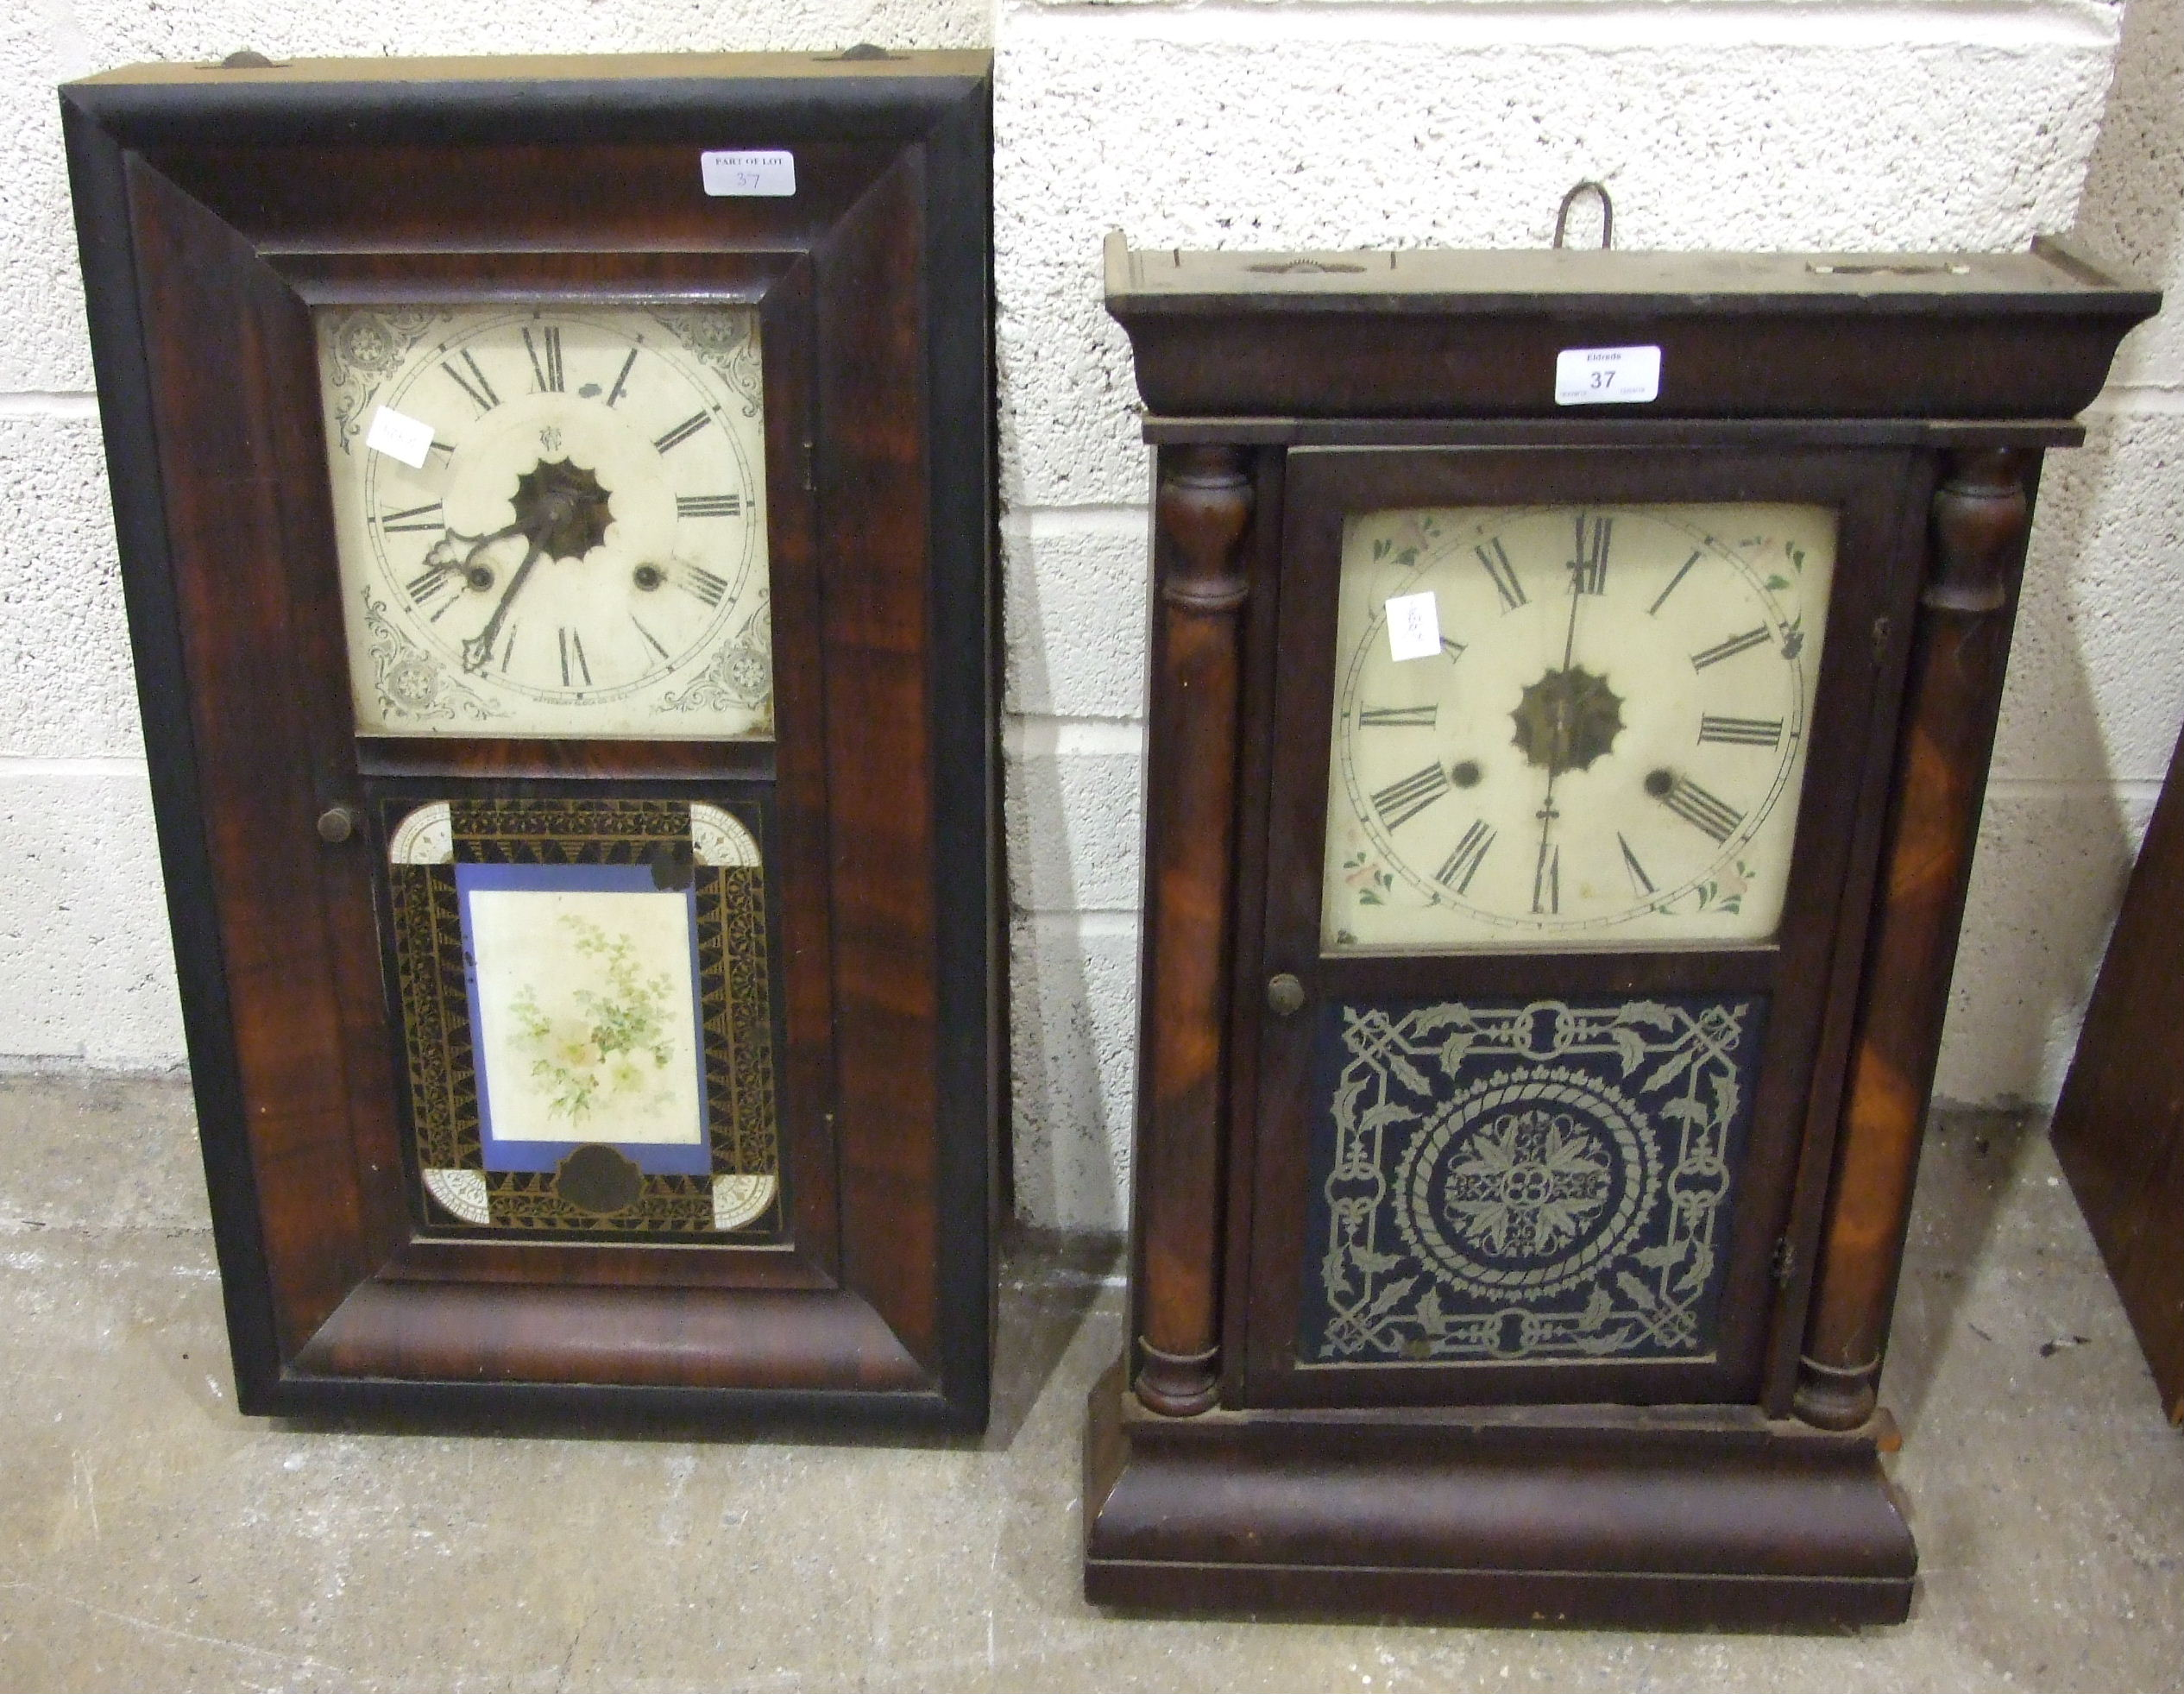 Lot 37 - A striking wall clock with inlaid case, 90cm high and two American striking wall clocks, (a/f), (